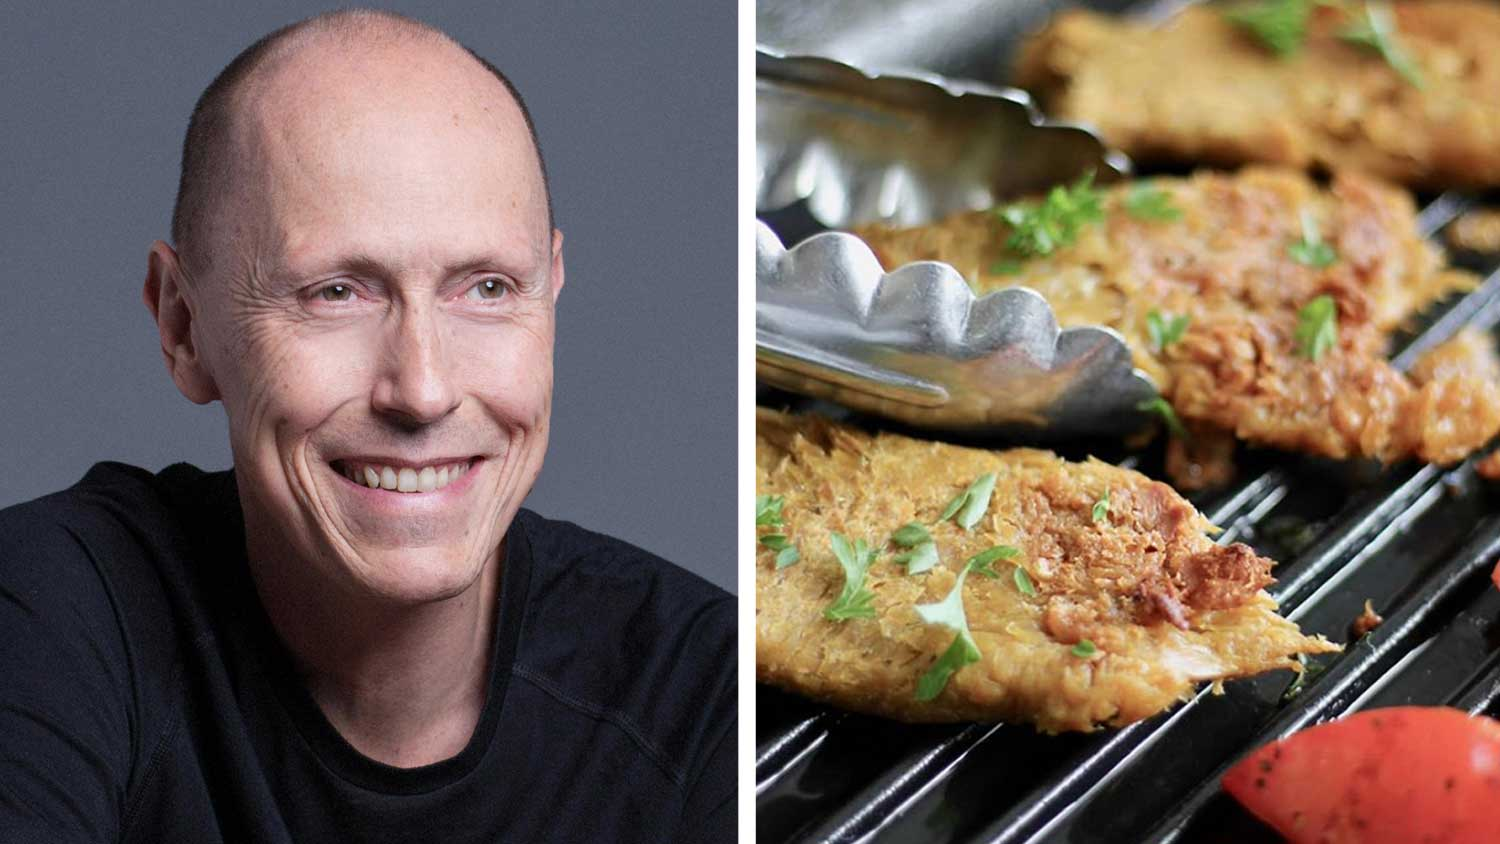 Why This Investor Is Betting Big on Vegan Chicken